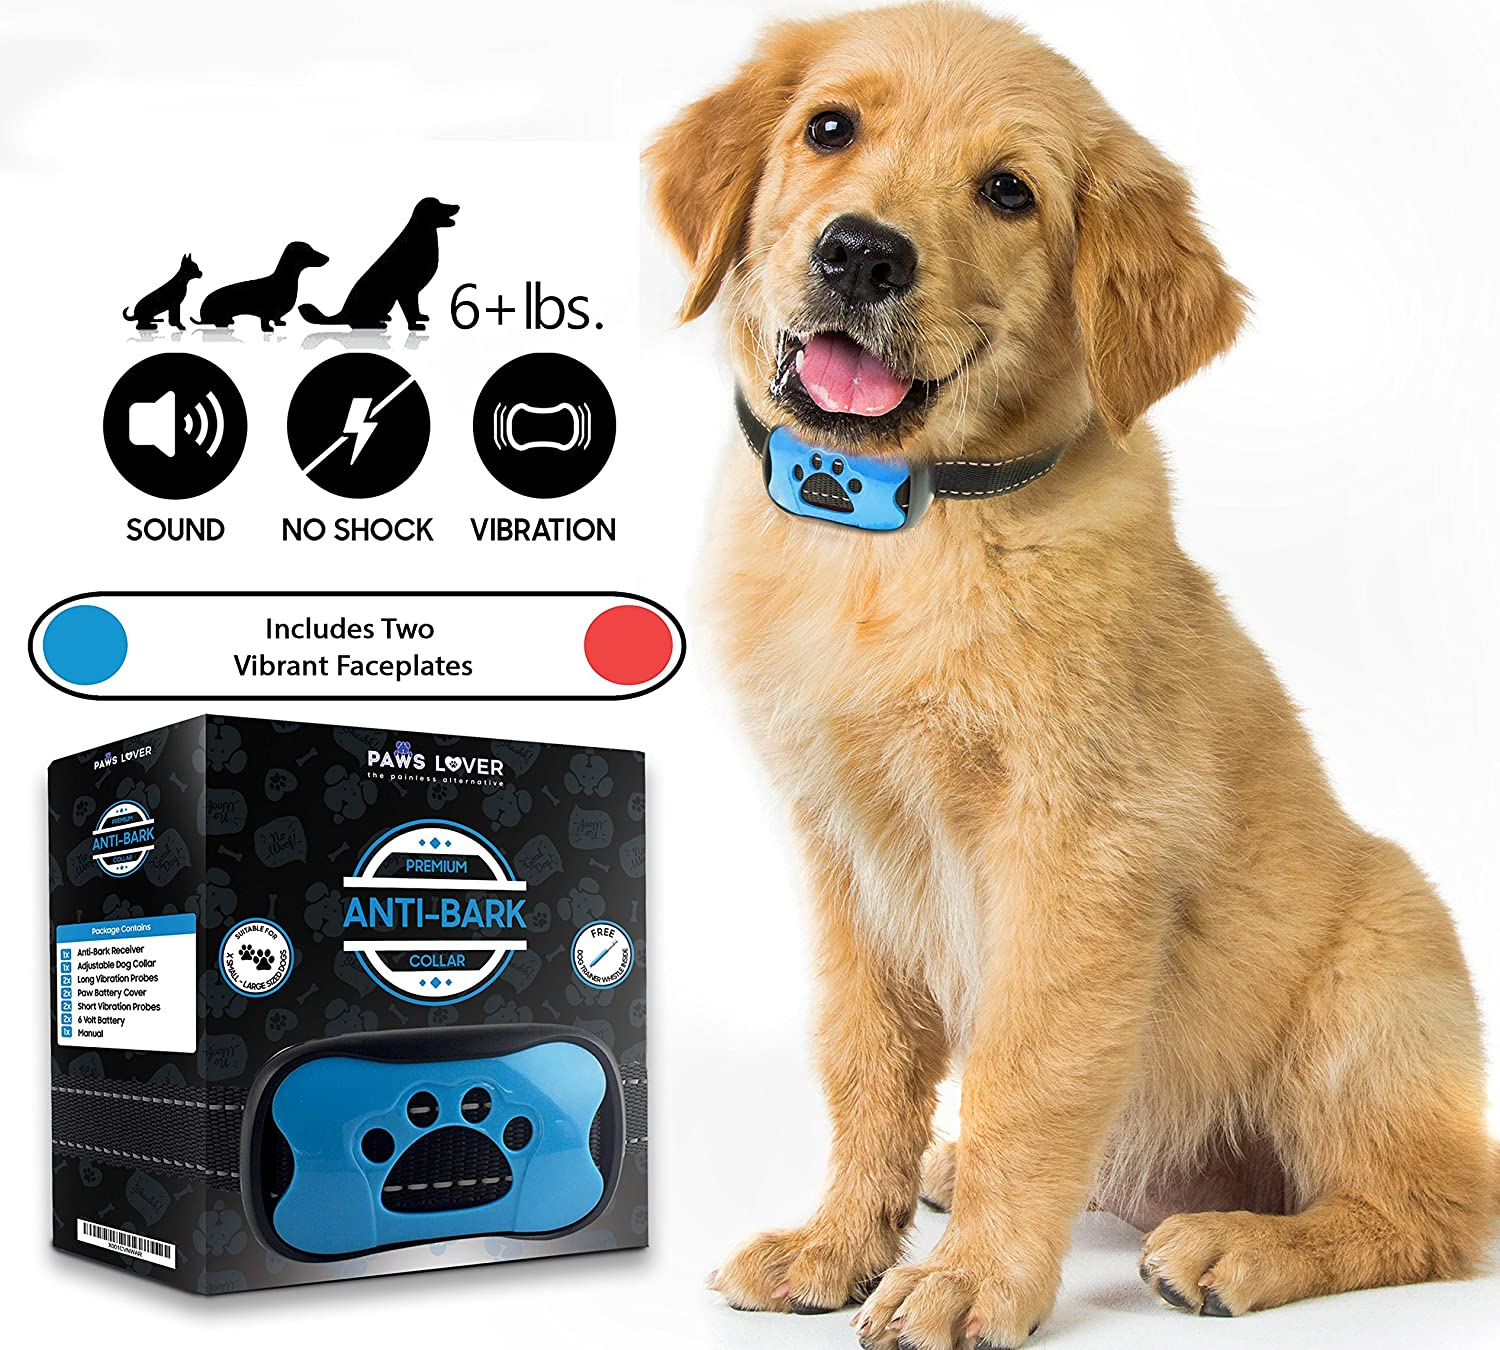 Paws Lover Anti Bark Collar Humane, No Harm Shock Bark Collar for Small Medium Large Dogs 7 Tone Levels – Sensitivity Adjustable, Sound Beep and Vibration No Bark Training Control